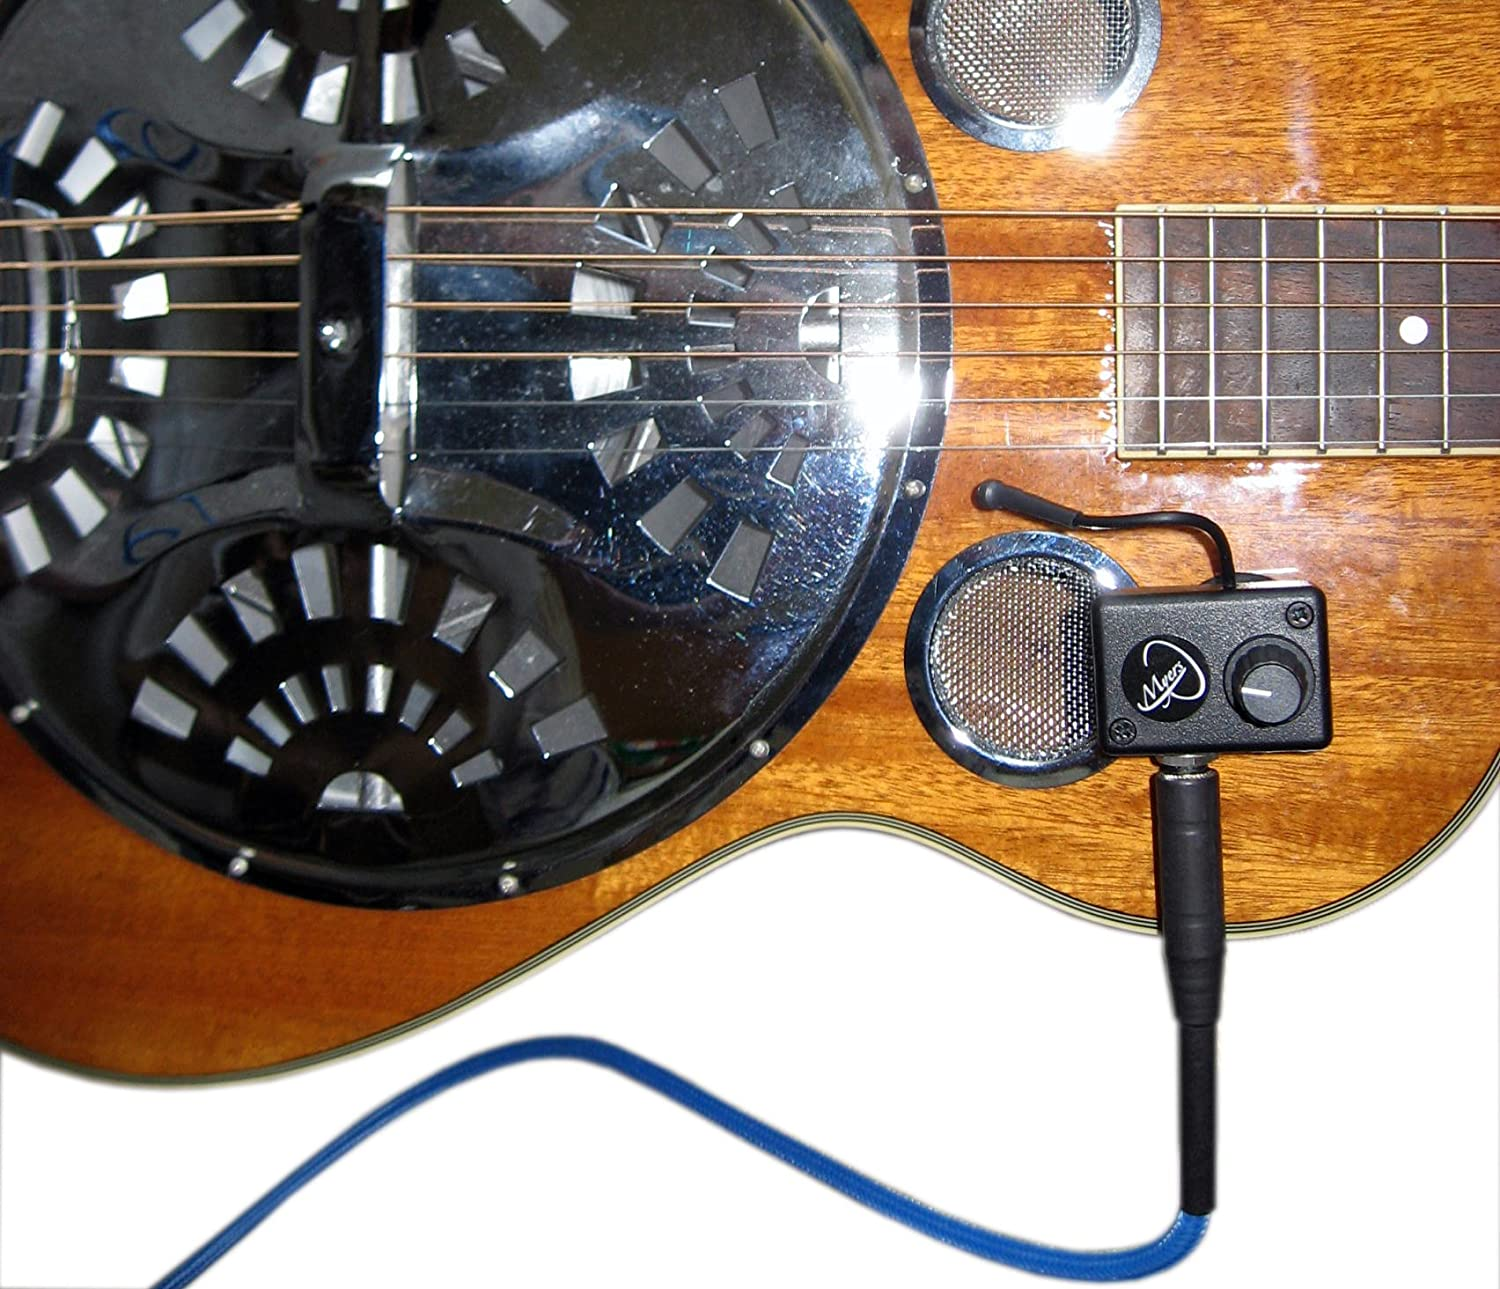 NATIONAL RESOPHONIC STYLE O RESONATOR GUITAR PICKUP with FLEXIBLE MICRO-GOOSE NECK by Myers Pickups ~ See it in ACTION! Copy and paste: myerspickups.com 22